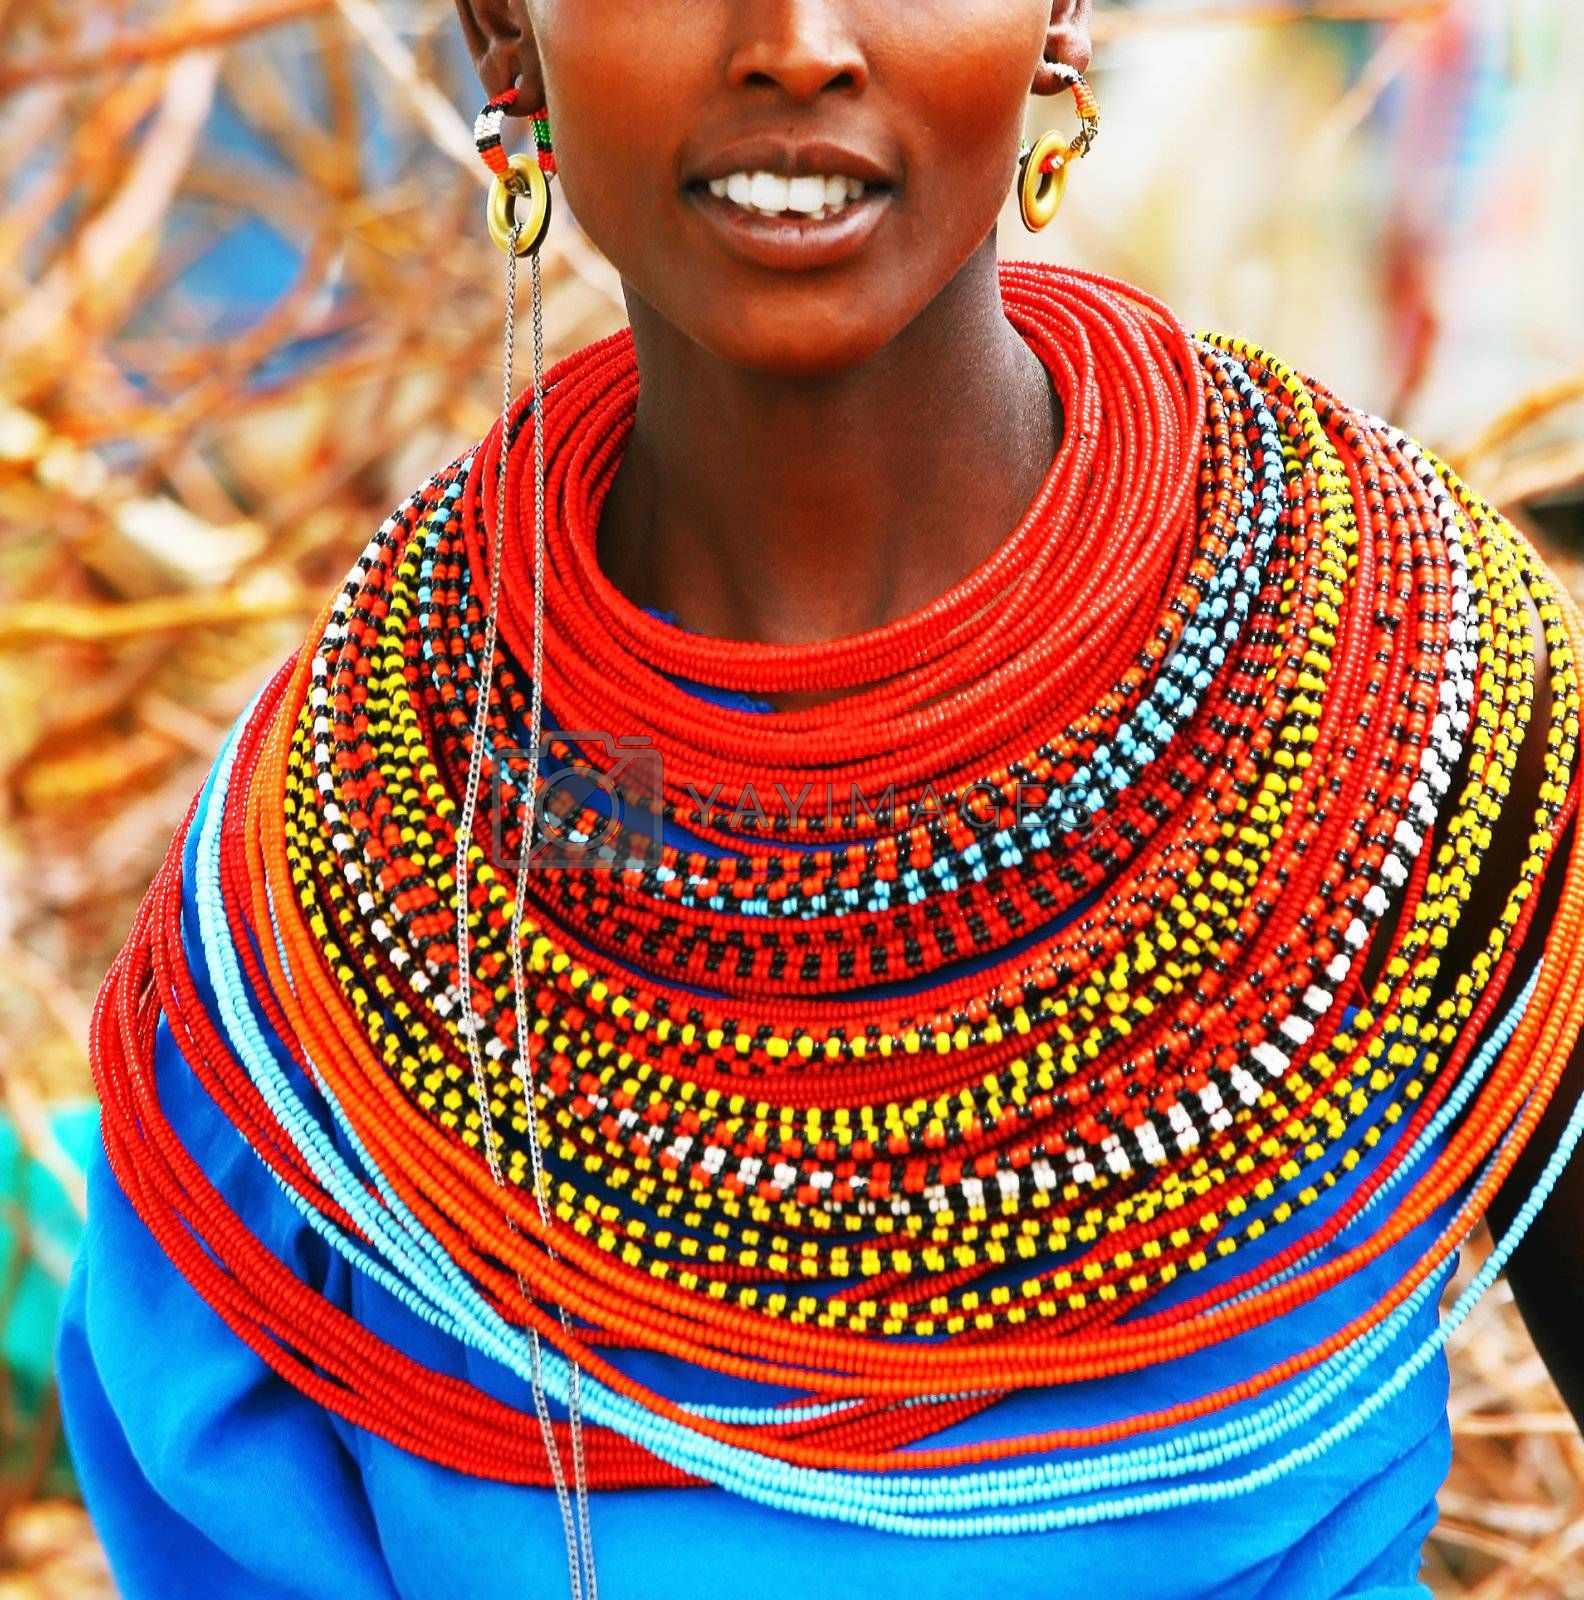 African woman with traditional accessories by Anna_Omelchenko